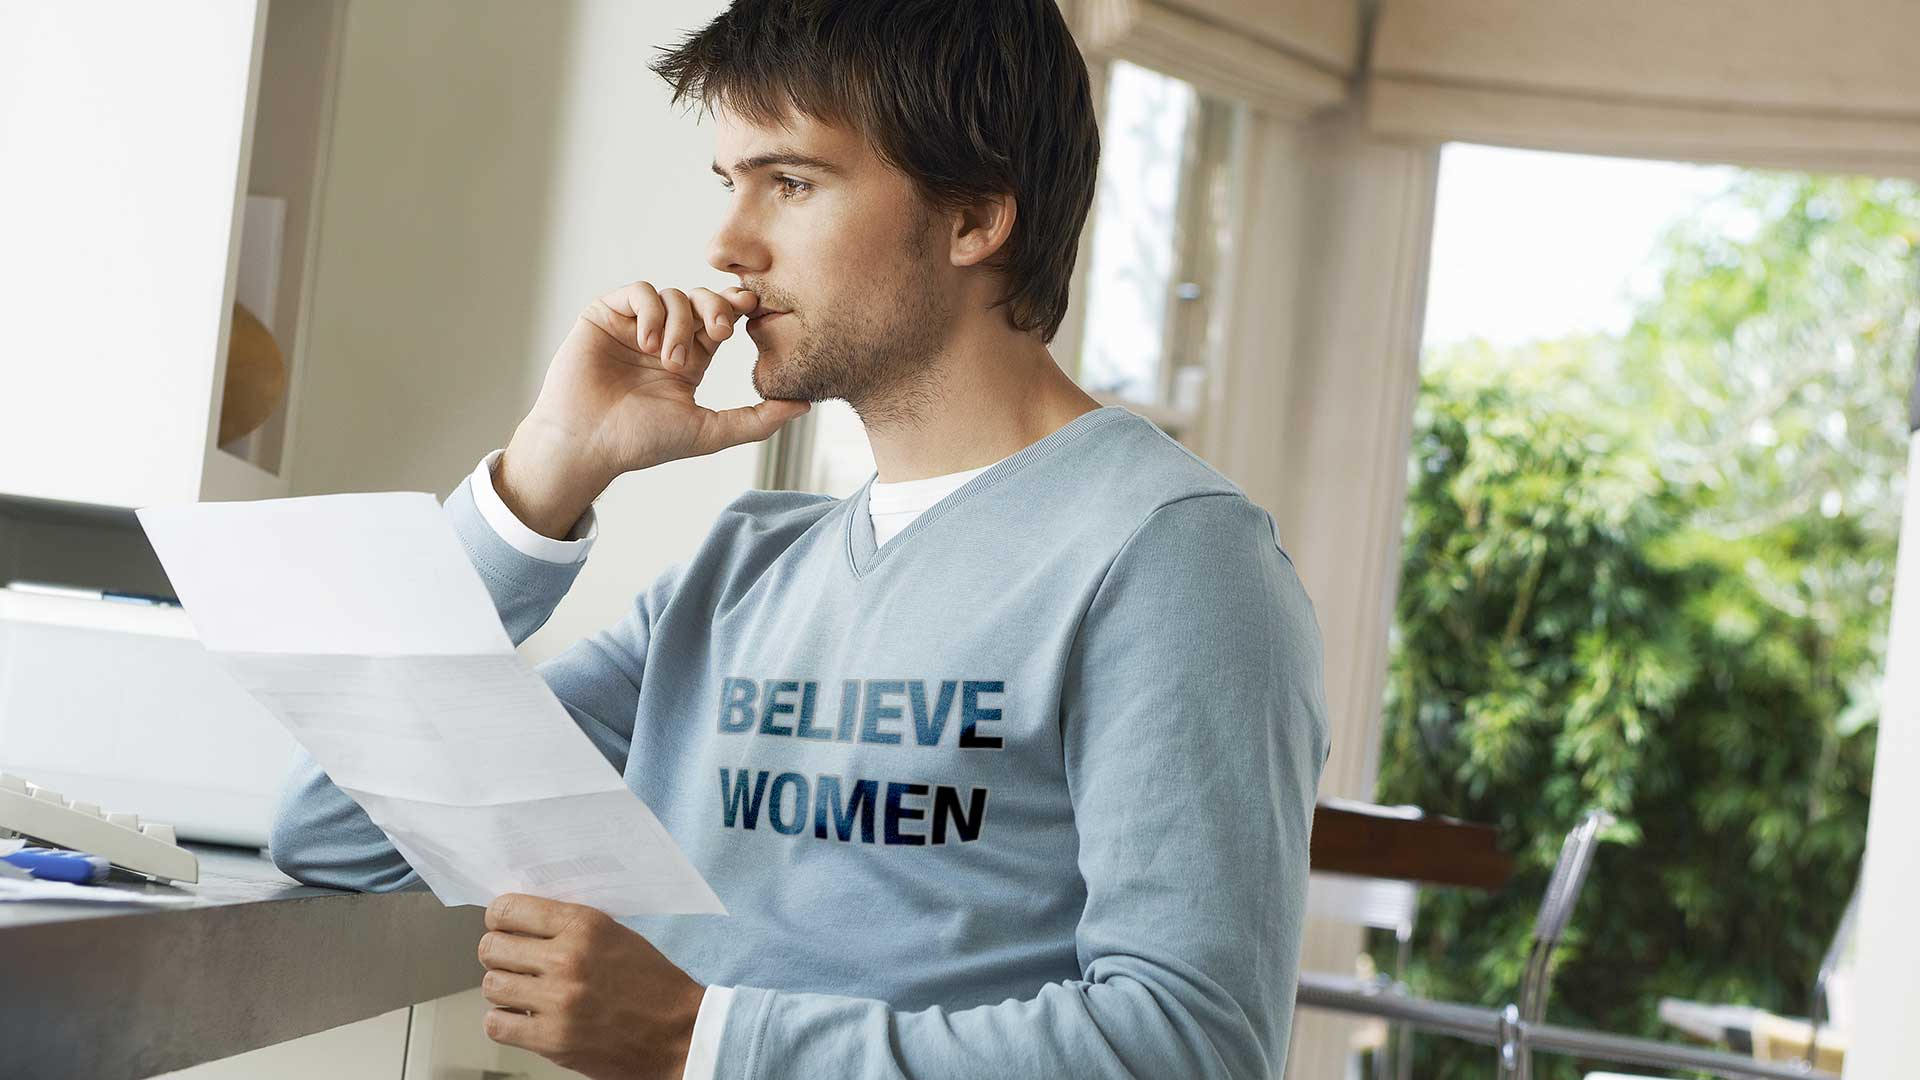 Man-in-'Believe-Women'-Shirt-Really-Hoping-You-Don't-Ask-About-Keith-Ellison.jpg